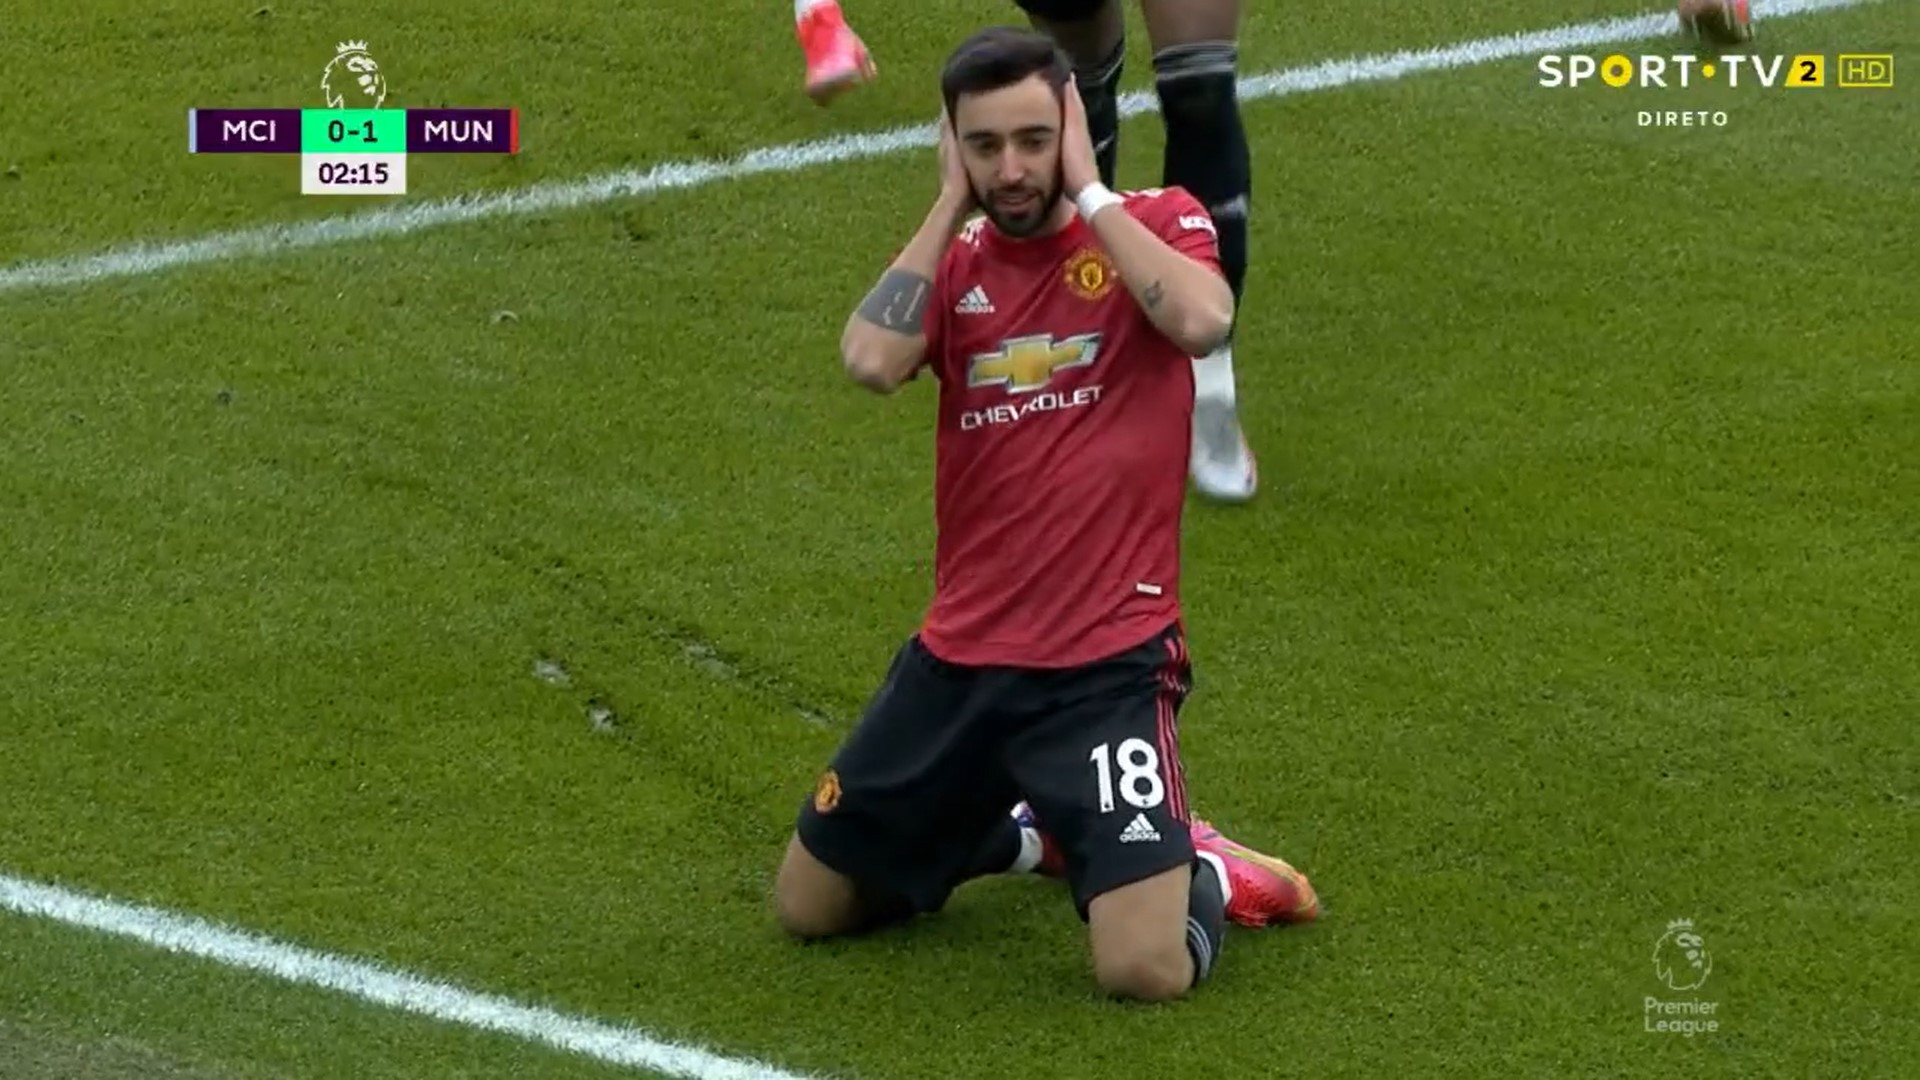 GOLO! Man. United, Bruno Fernandes aos 2', Man. City 0-1 Man. United